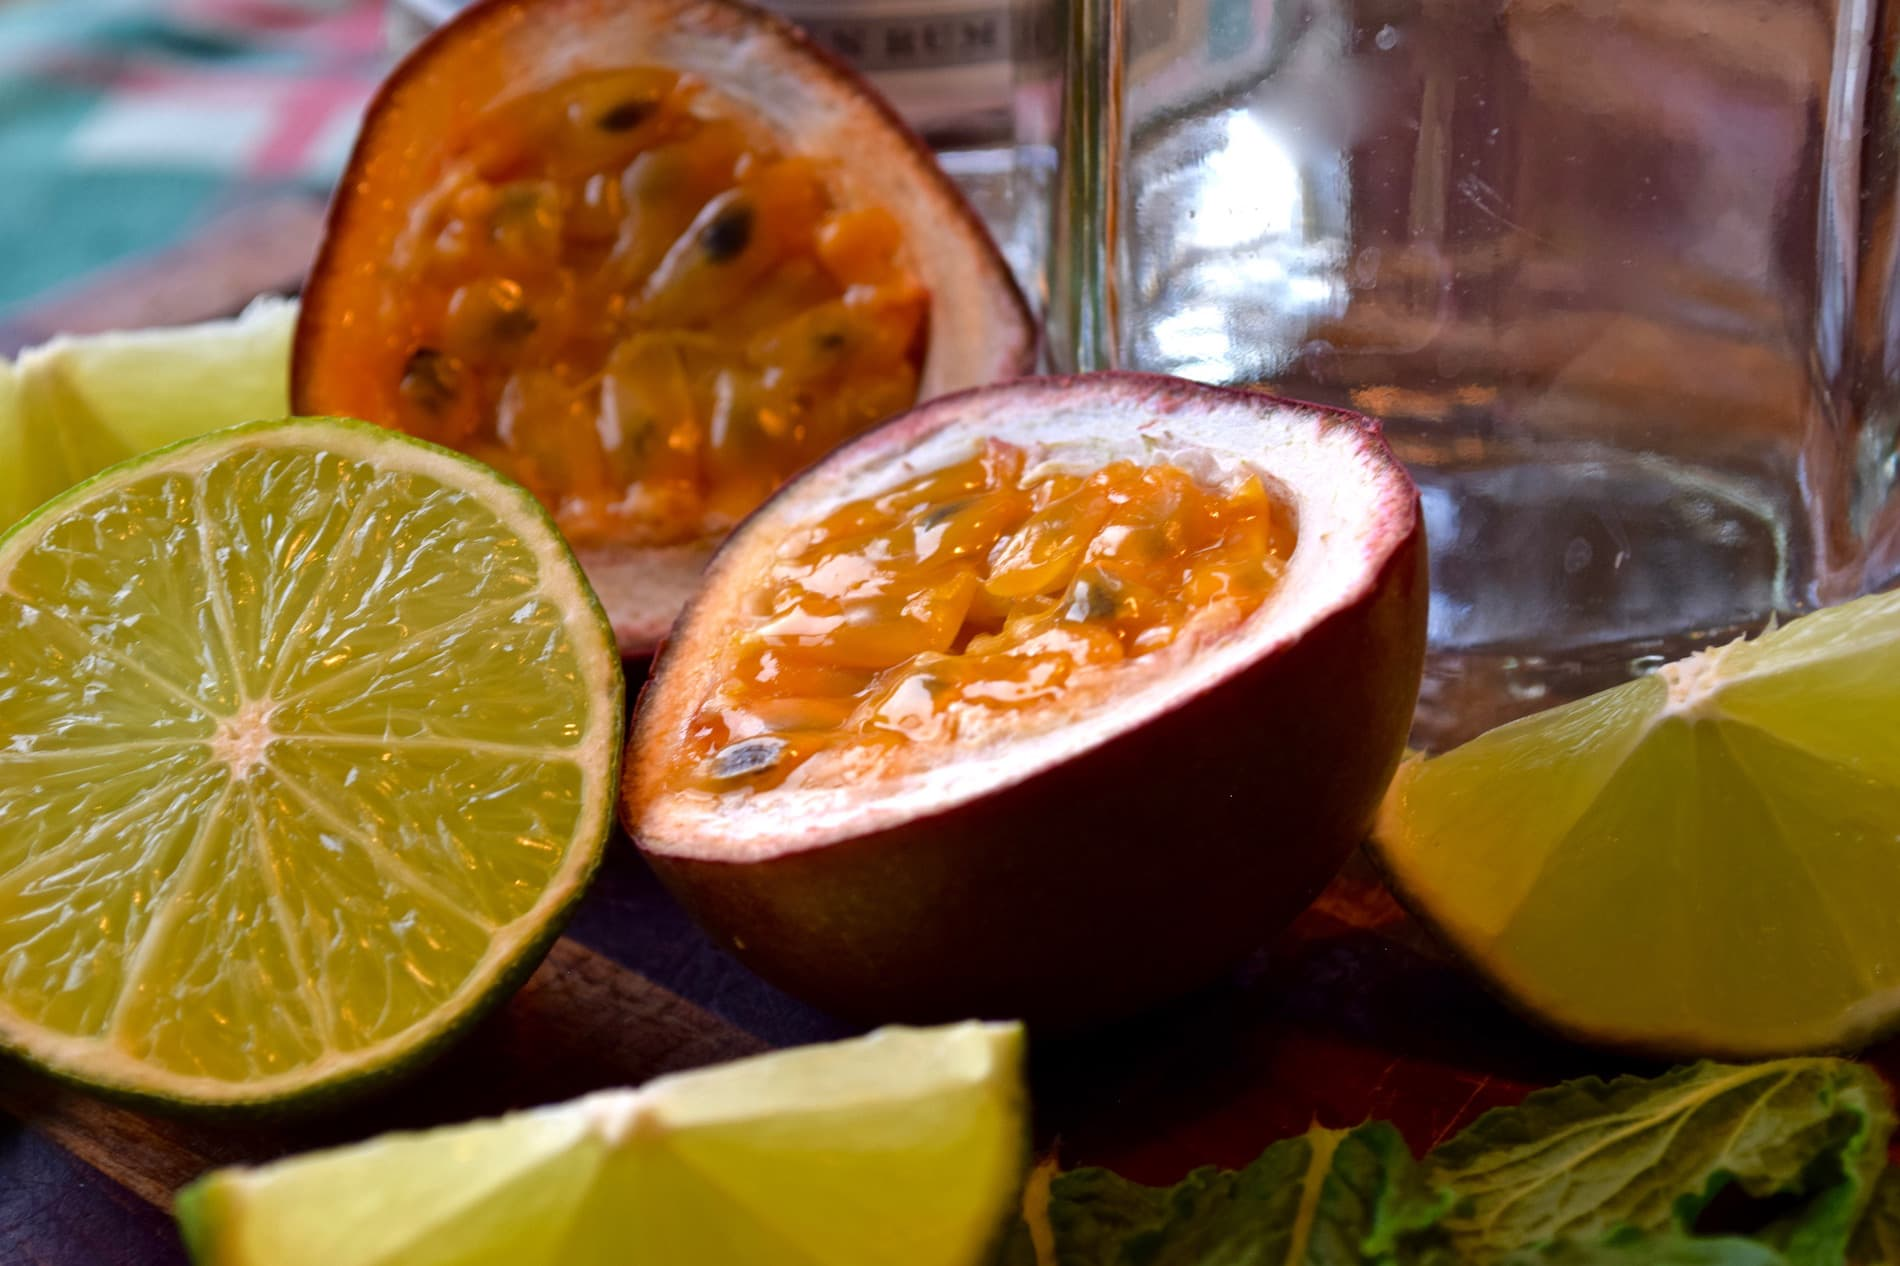 Passion fruit and limes